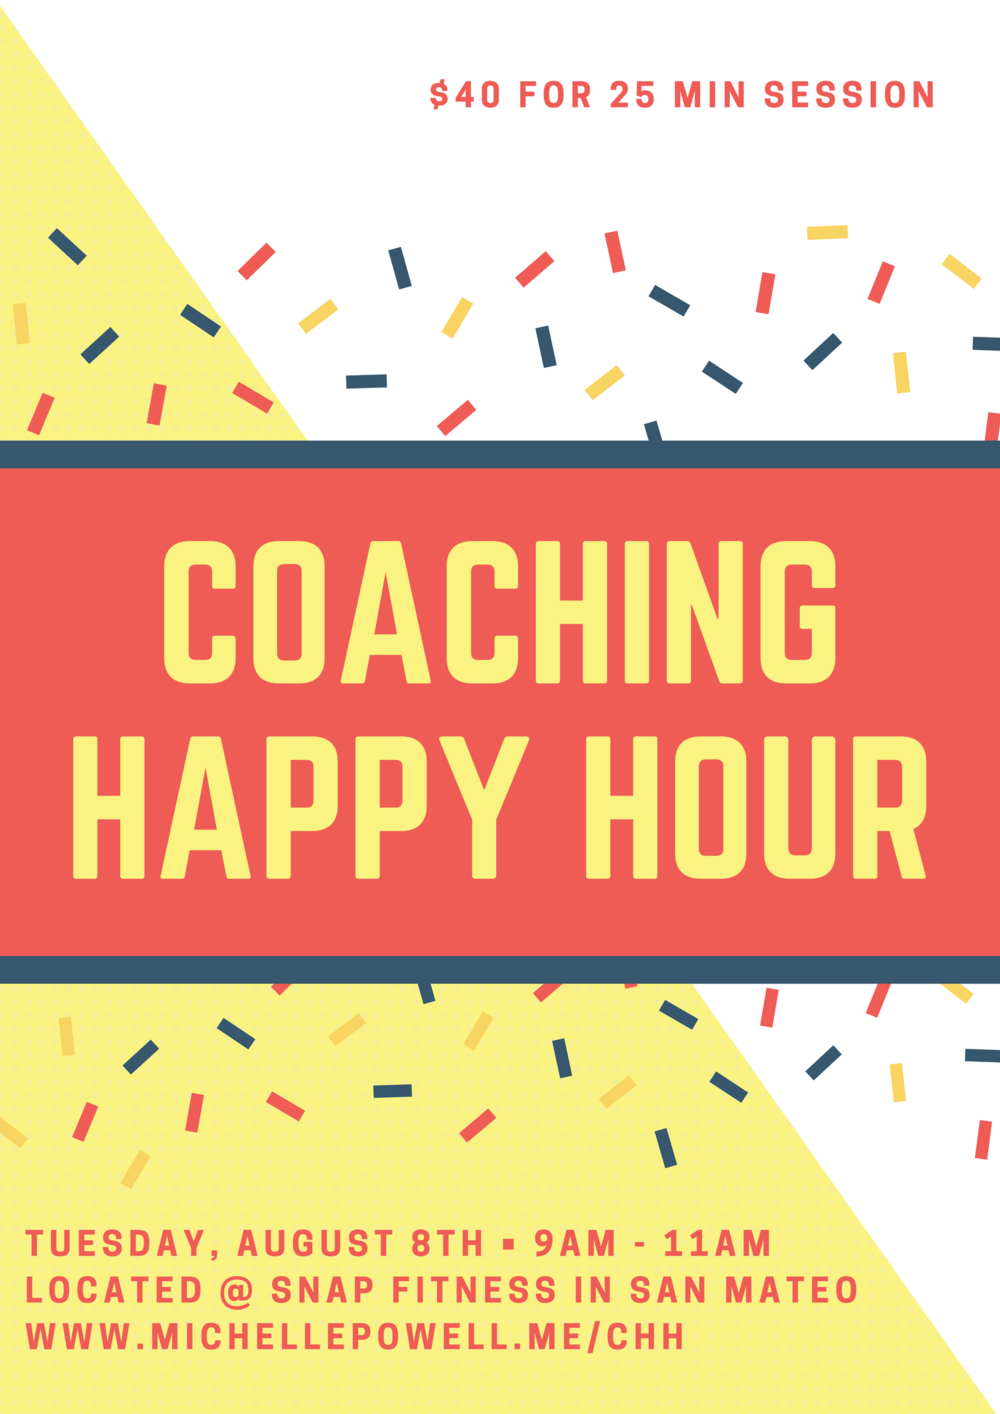 Coaching Happy Hour is a fun way to experience the power of coaching in a timeframe that you can affordably squeeze into your busy day.   - Pick a personal or business topic, challenge, decision, problem or pain point to work though and In 25 minutes, you can expect to:• Gain greater clarity• Figure out the best solution• Make a decision (big or small)• Figure out what your next step is• Kick up your happiness a notch or two!